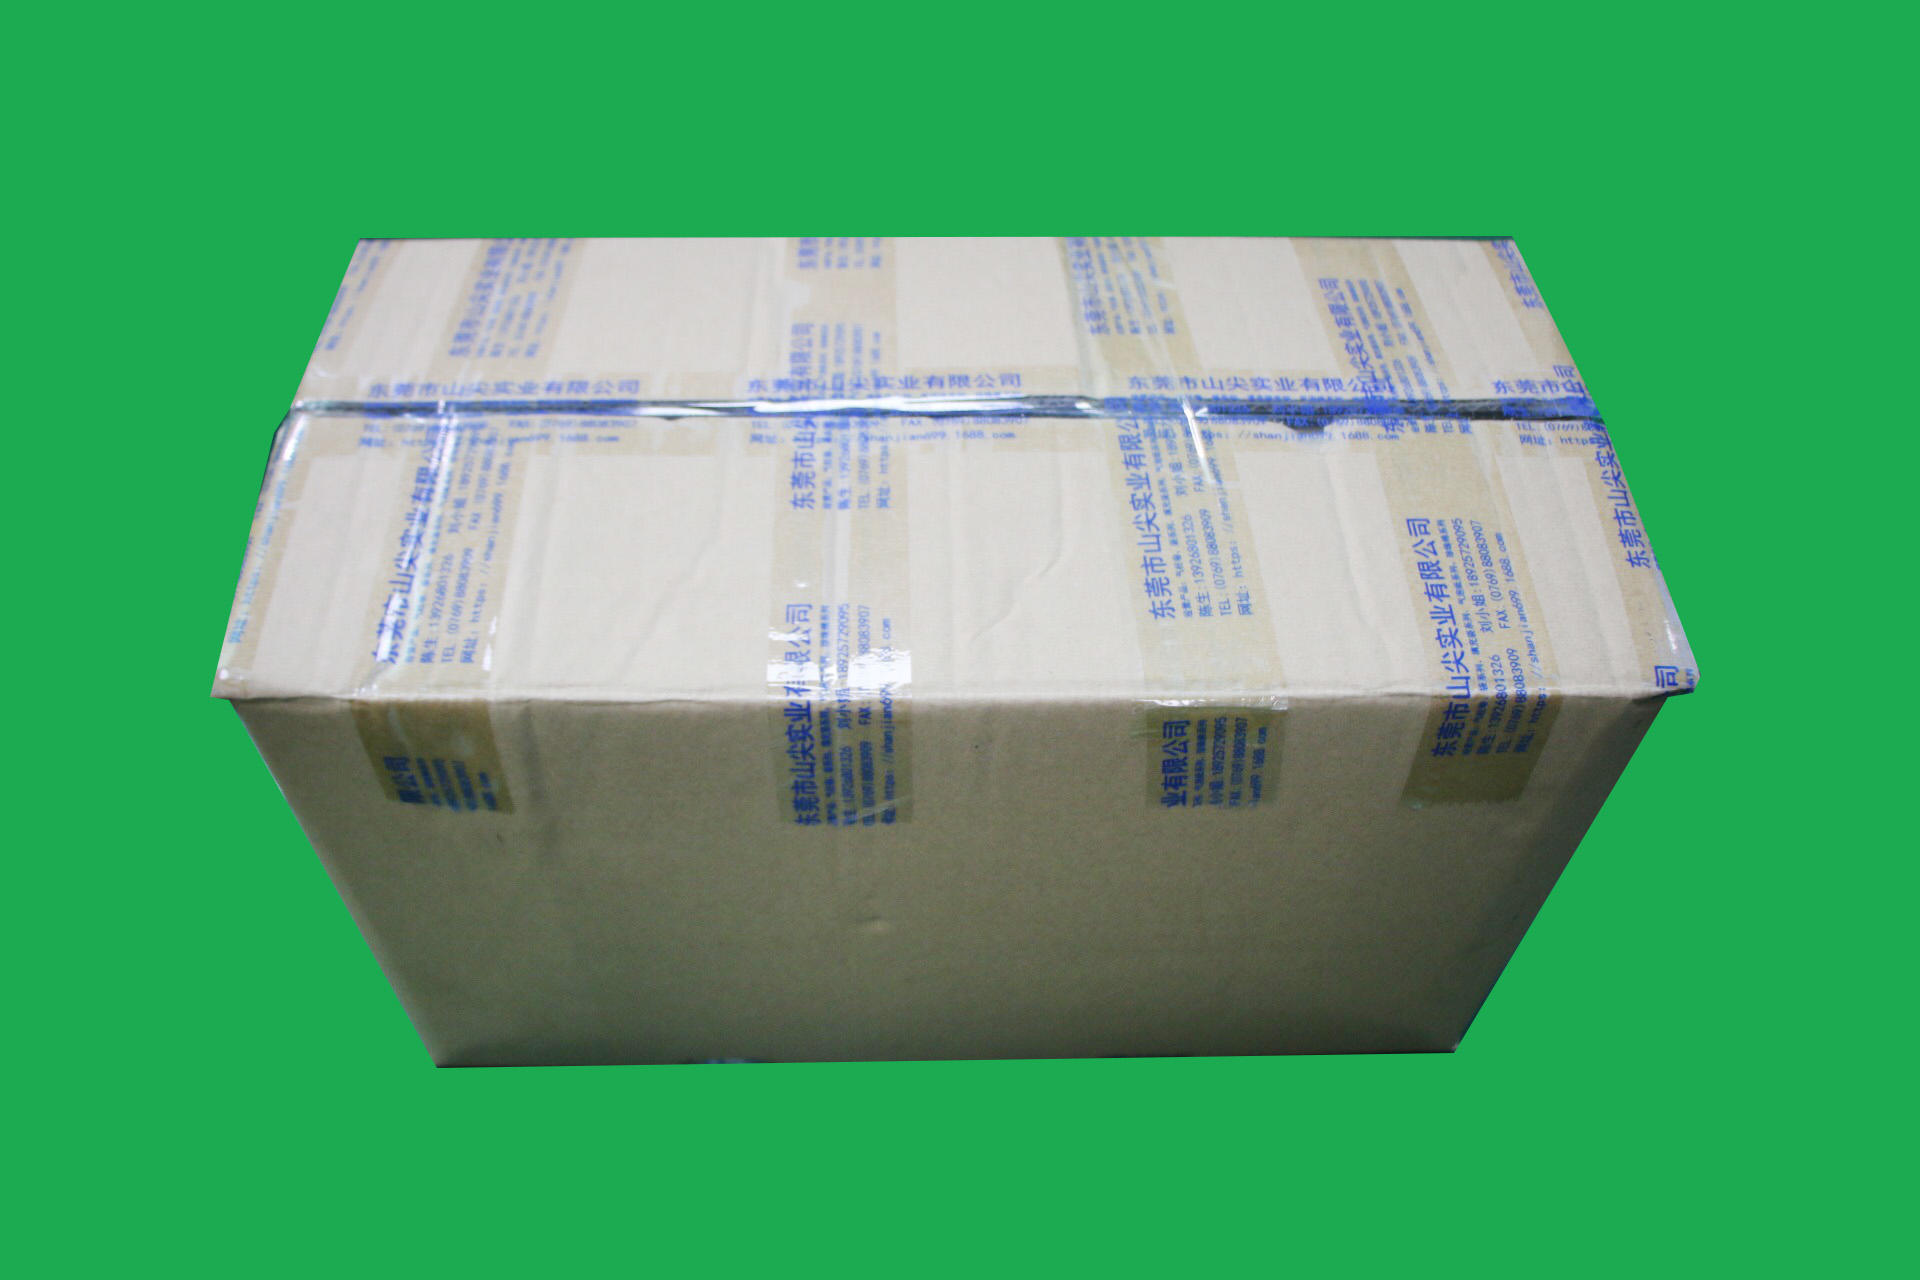 Sunshinepack High-quality air packing machine for business for transportation